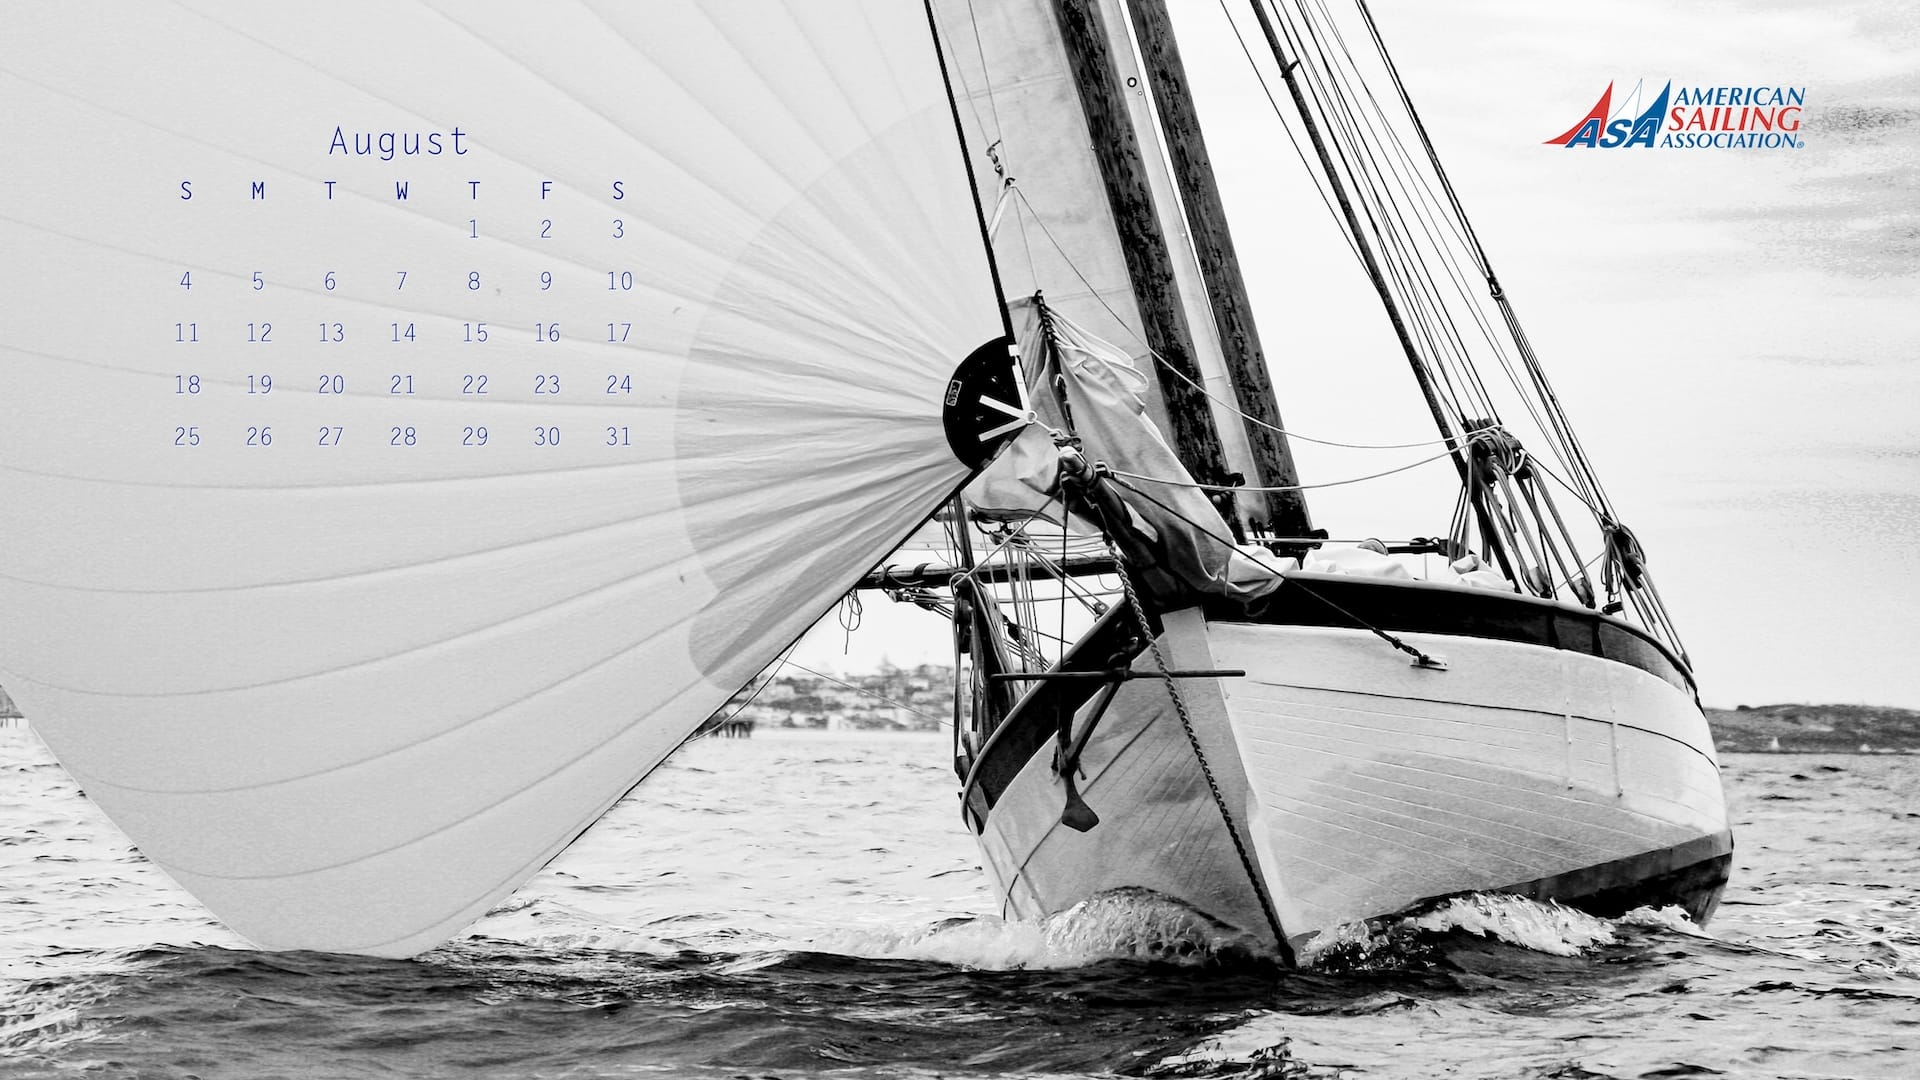 ASA Desktop Wallpaper Sailing Calendar - August 2019